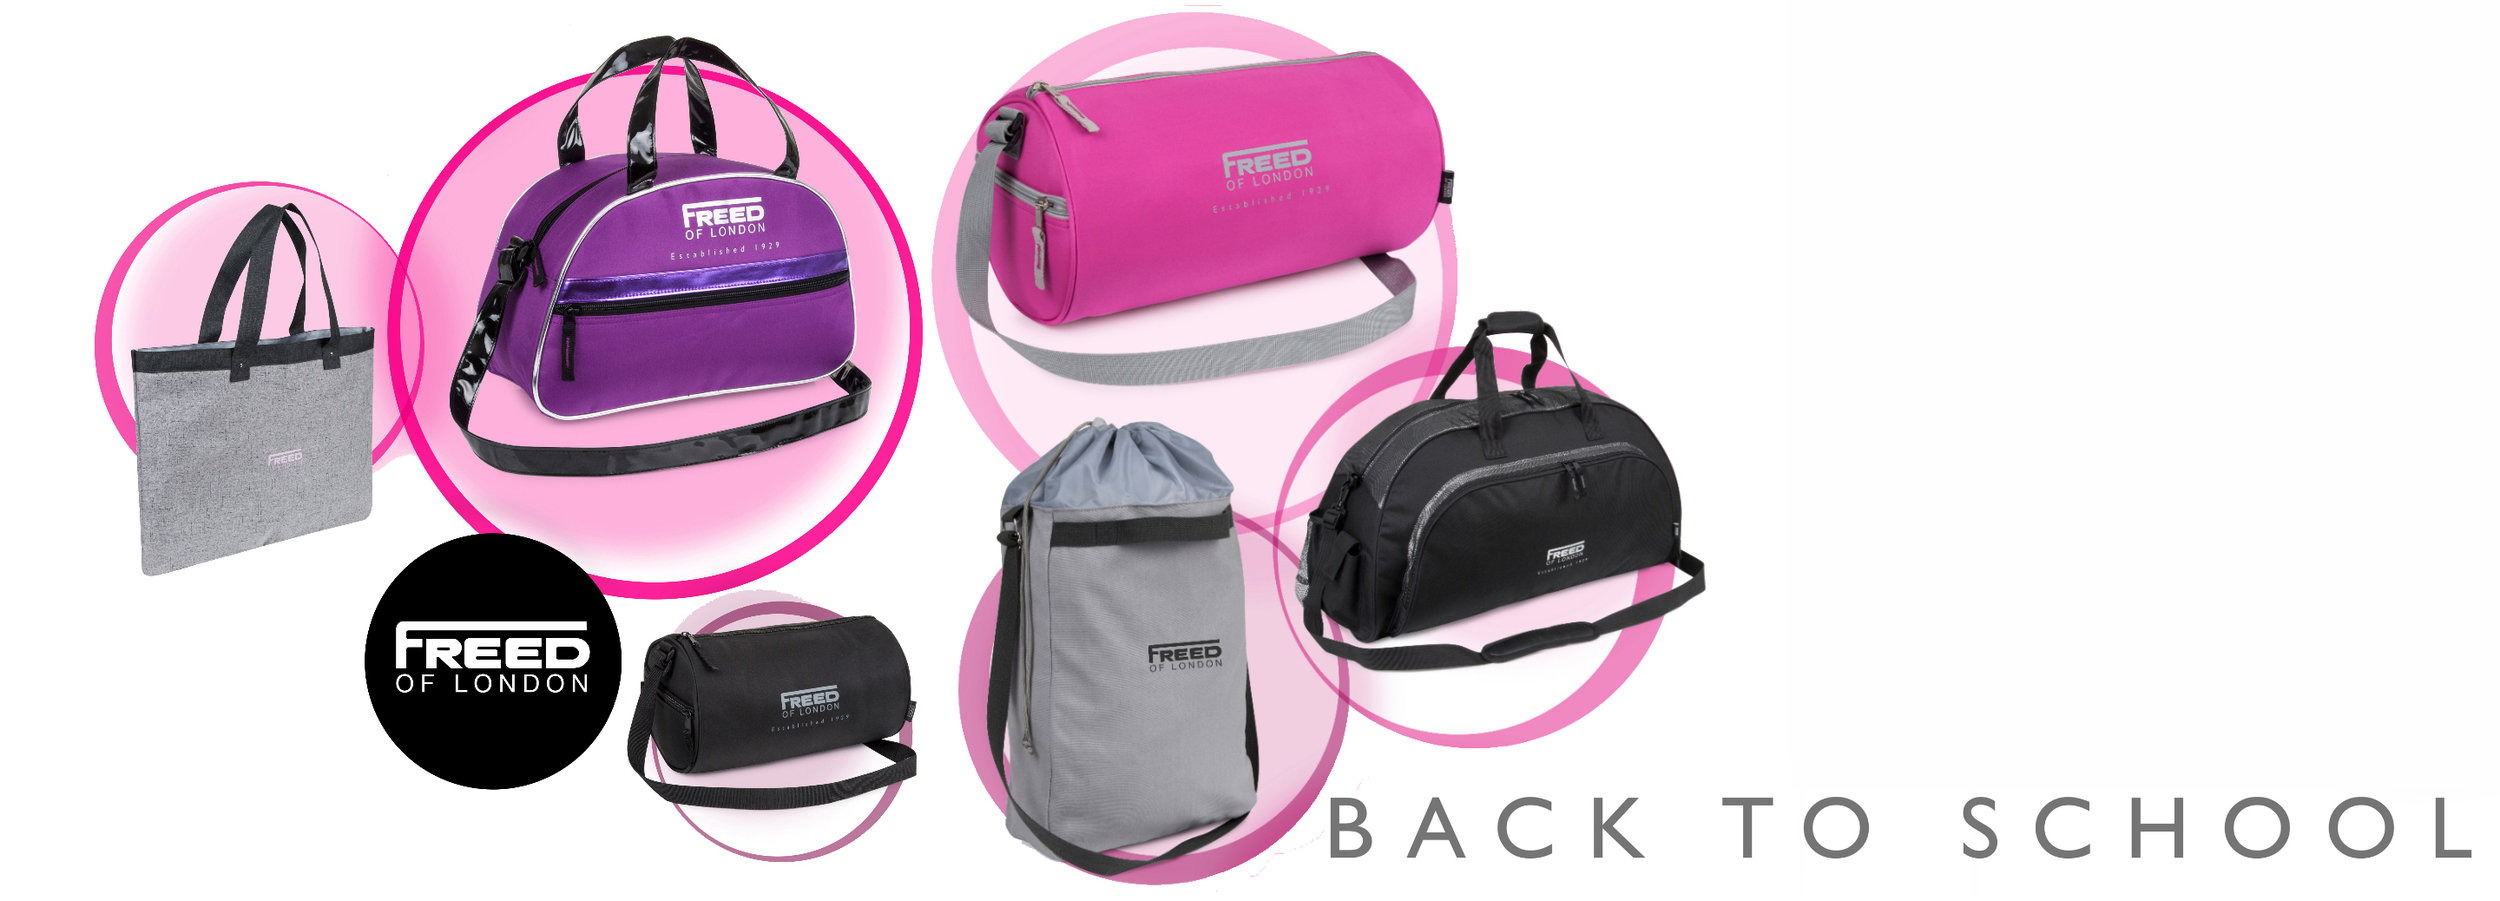 Facebook Banner Back to School 2016 Bags.jpg